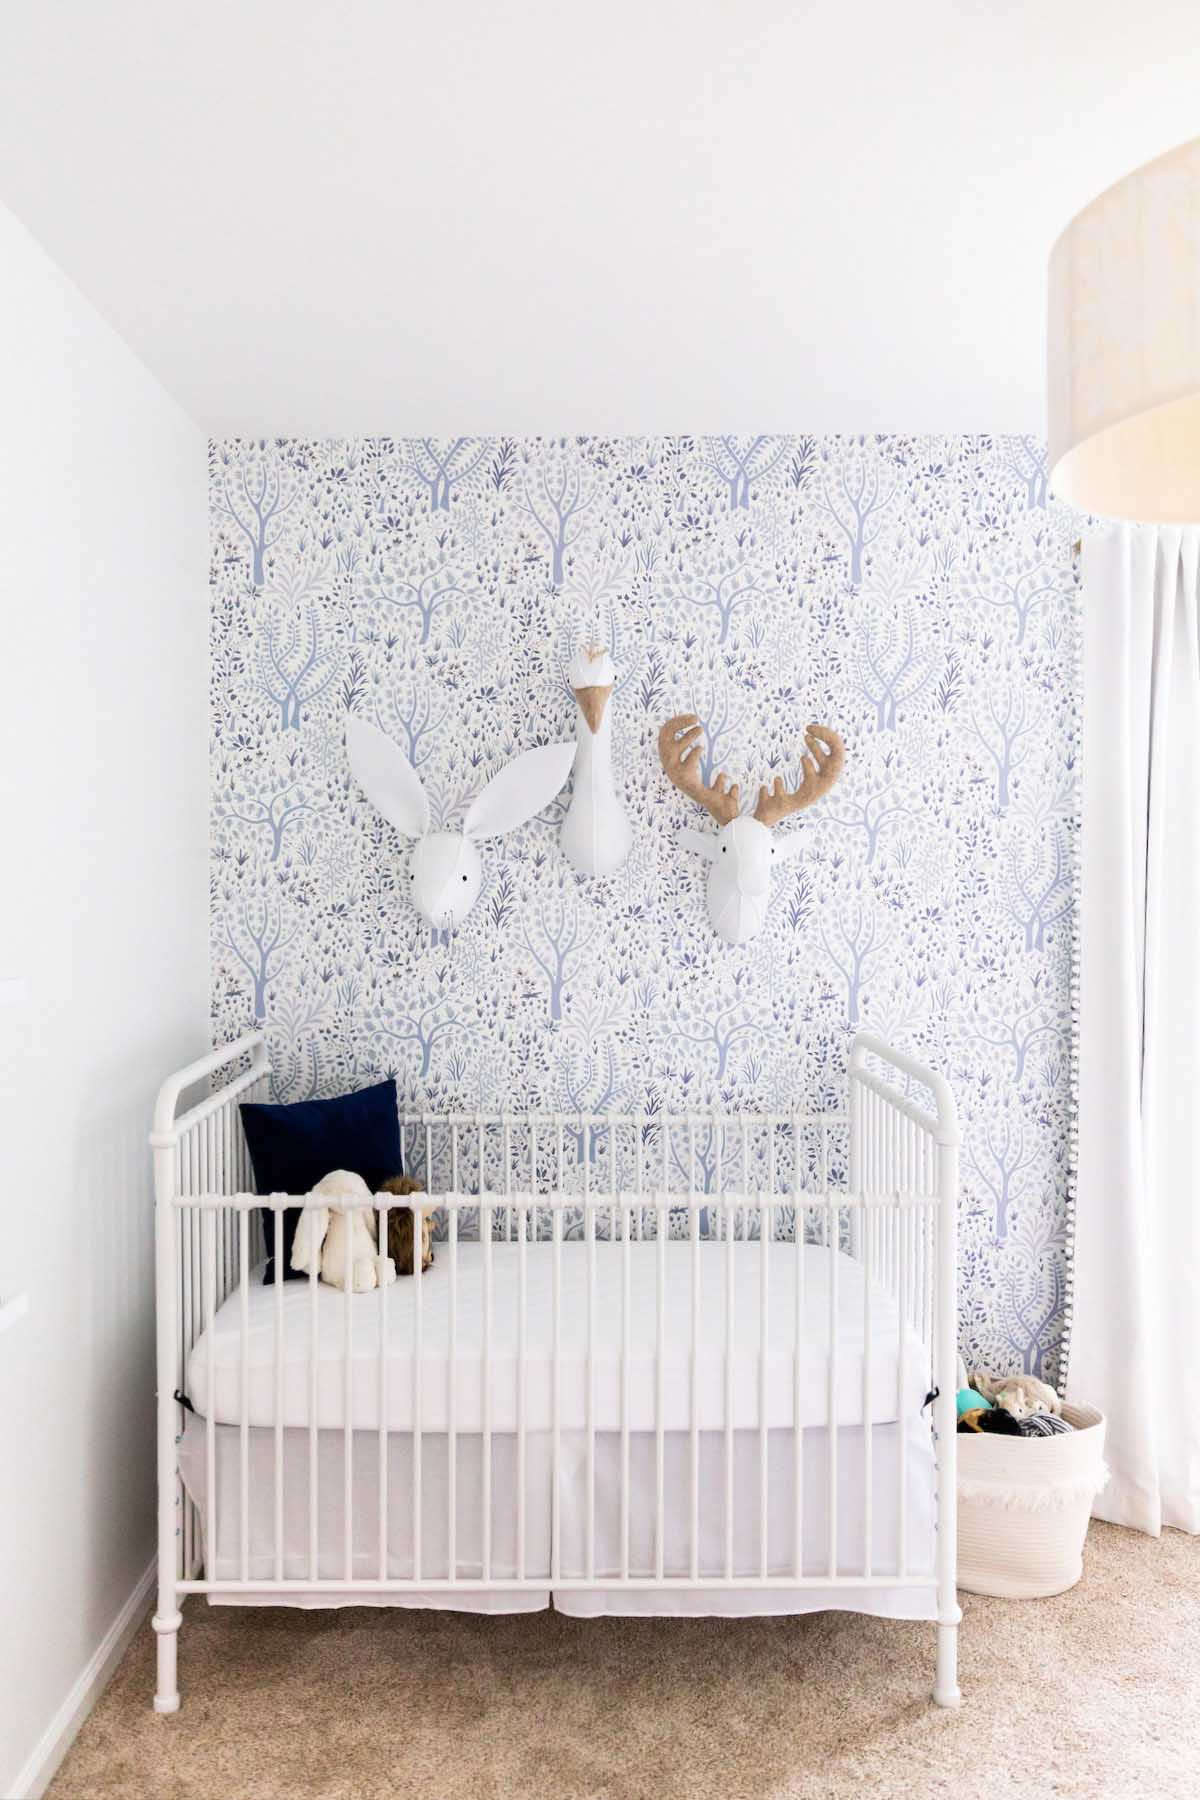 white iron crib in baby nursery with wallpaper